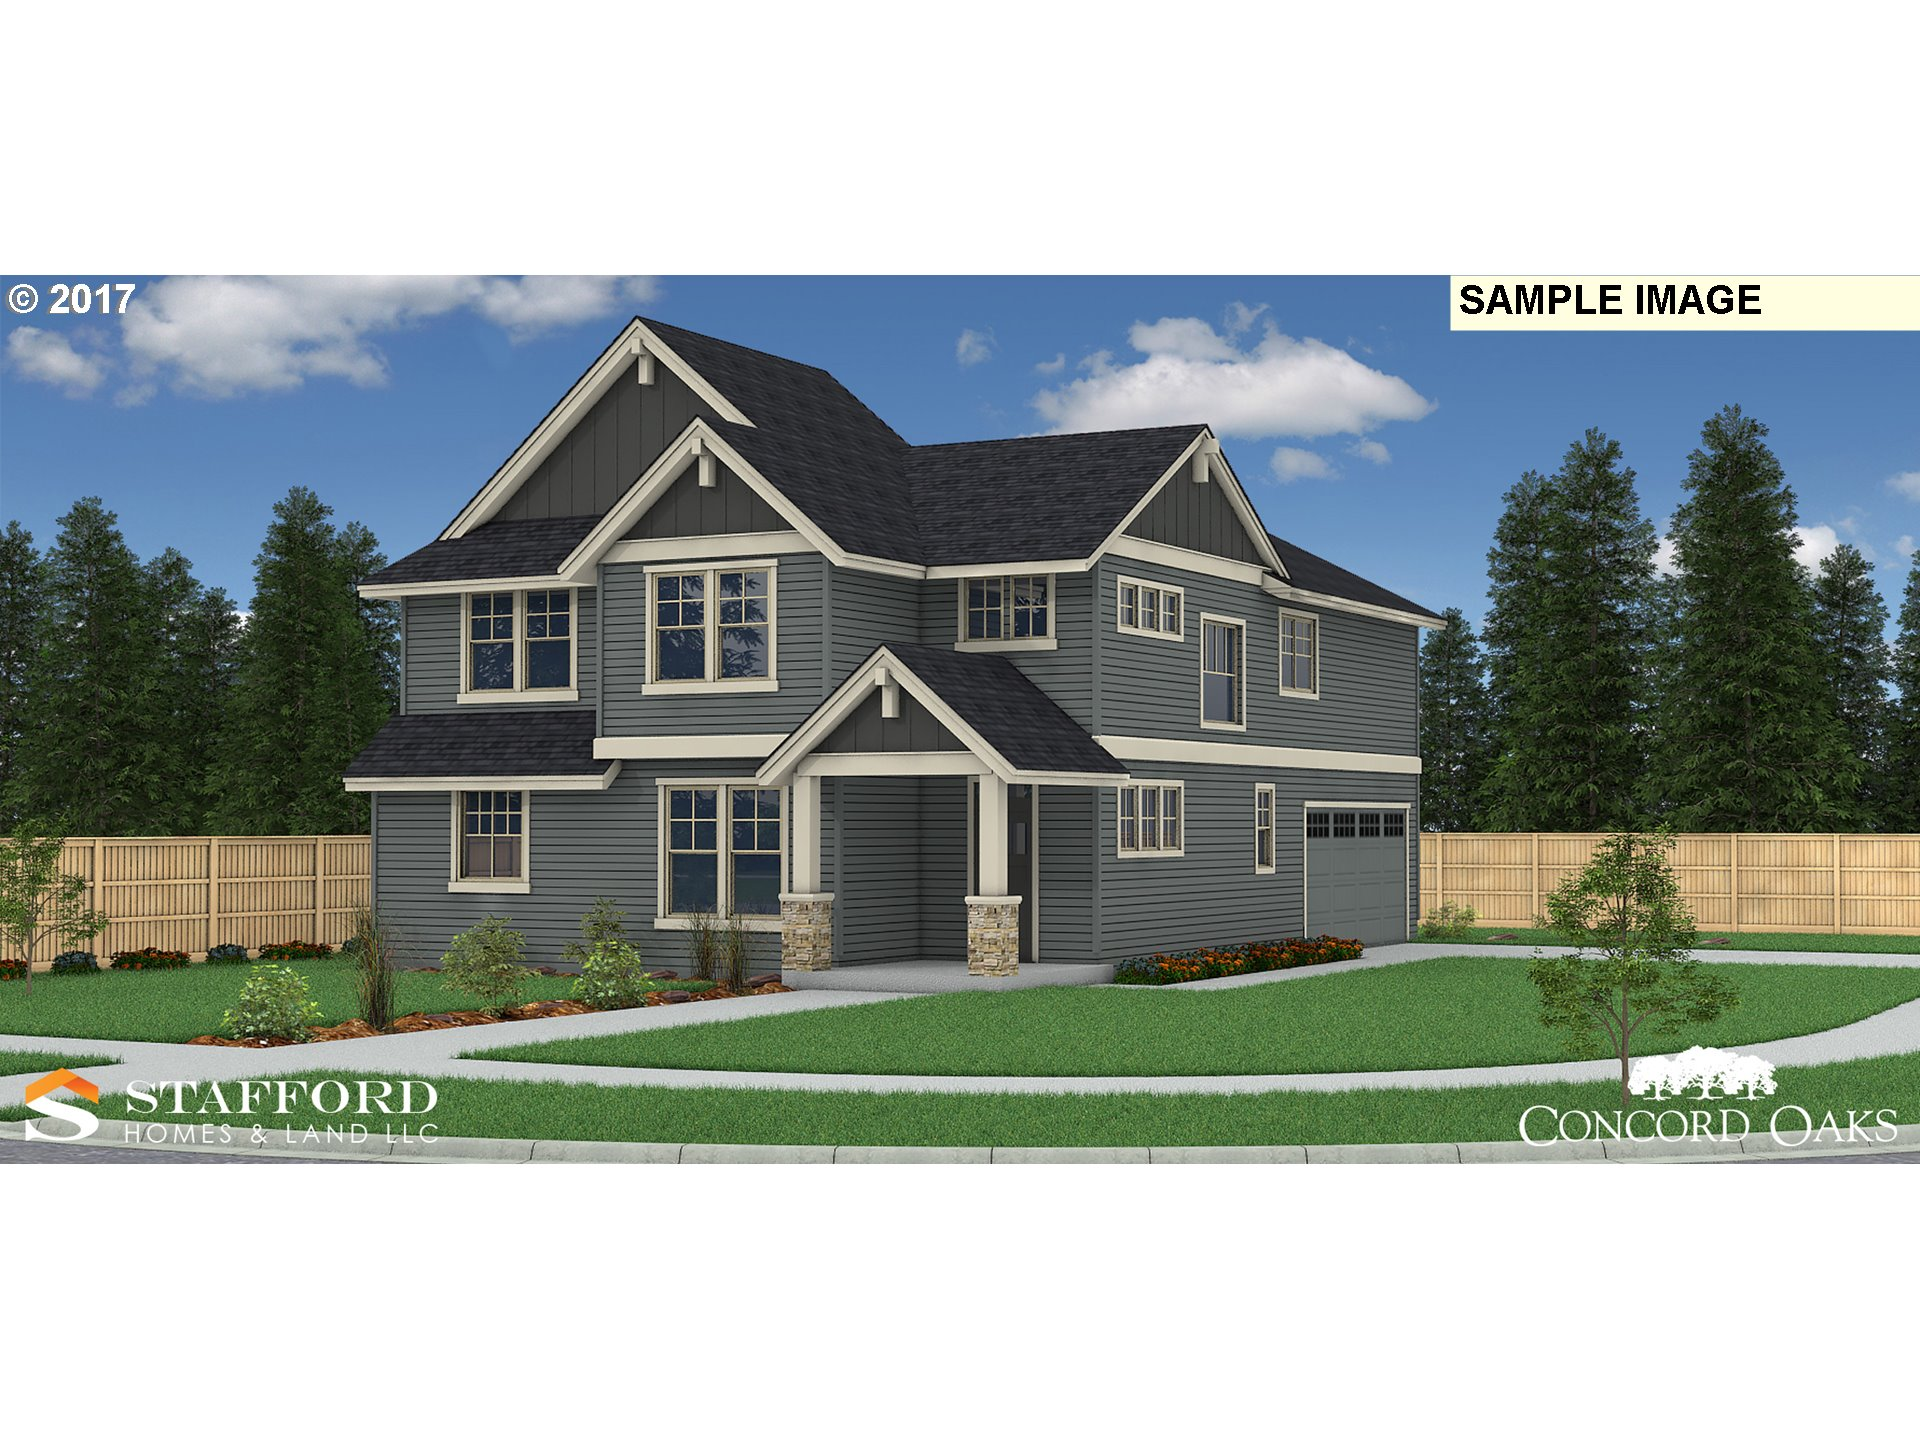 $8,000 builder bucks credit through 12/15! Built by award winning 2016 St. of Dreams developer/builder. Oak Groves newest subdivision. Slab granite counter tops, Stainless appliances, Covered patio, AC ready, and wired for solar. Plumbed for Central Vac. Front and back landscaping, irrigation, and fenced.